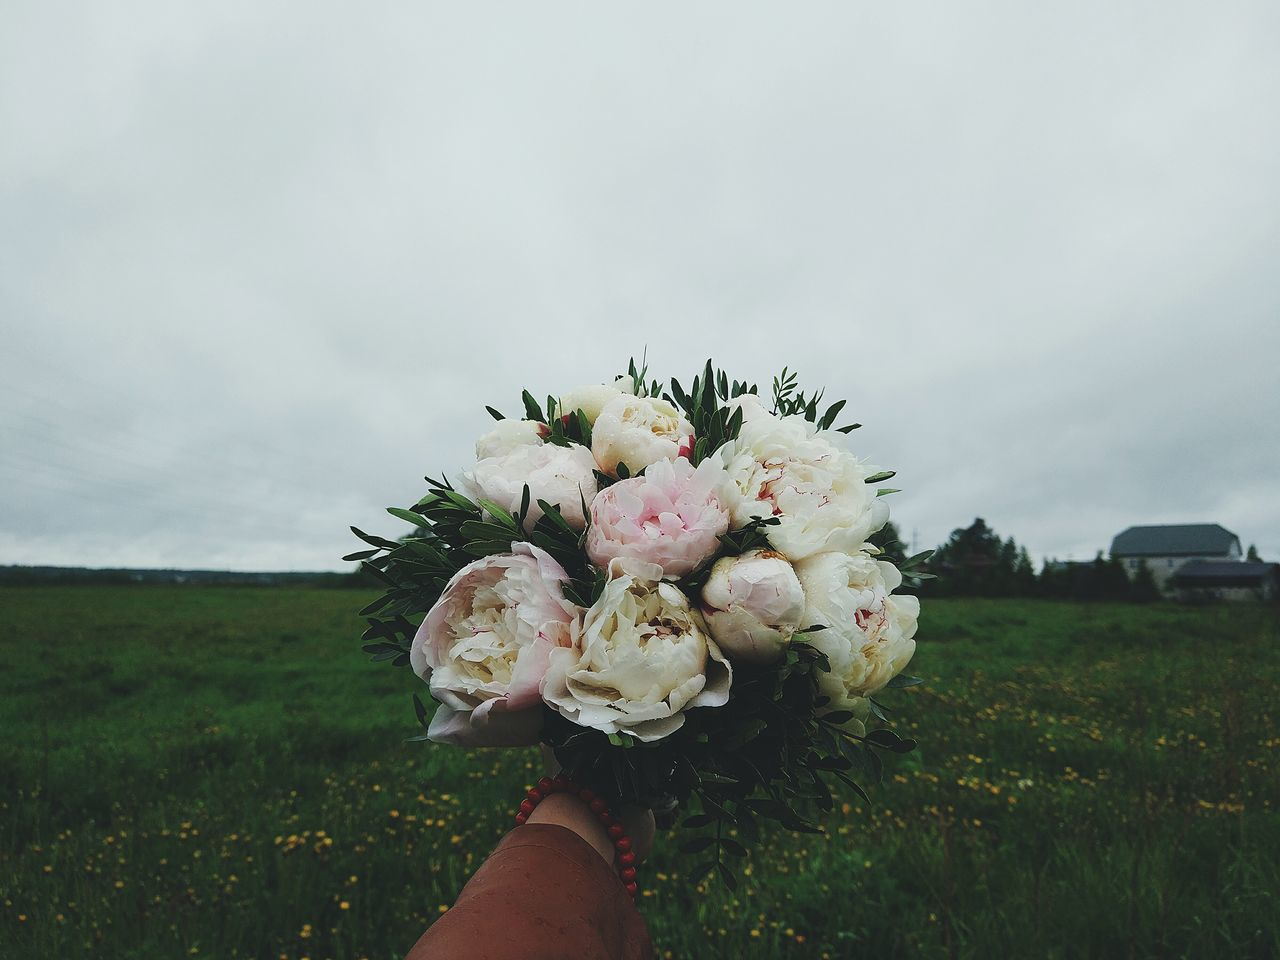 flower, human hand, holding, nature, one person, bouquet, human body part, beauty in nature, fragility, real people, field, outdoors, day, women, sky, freshness, close-up, flower head, grass, bride, people